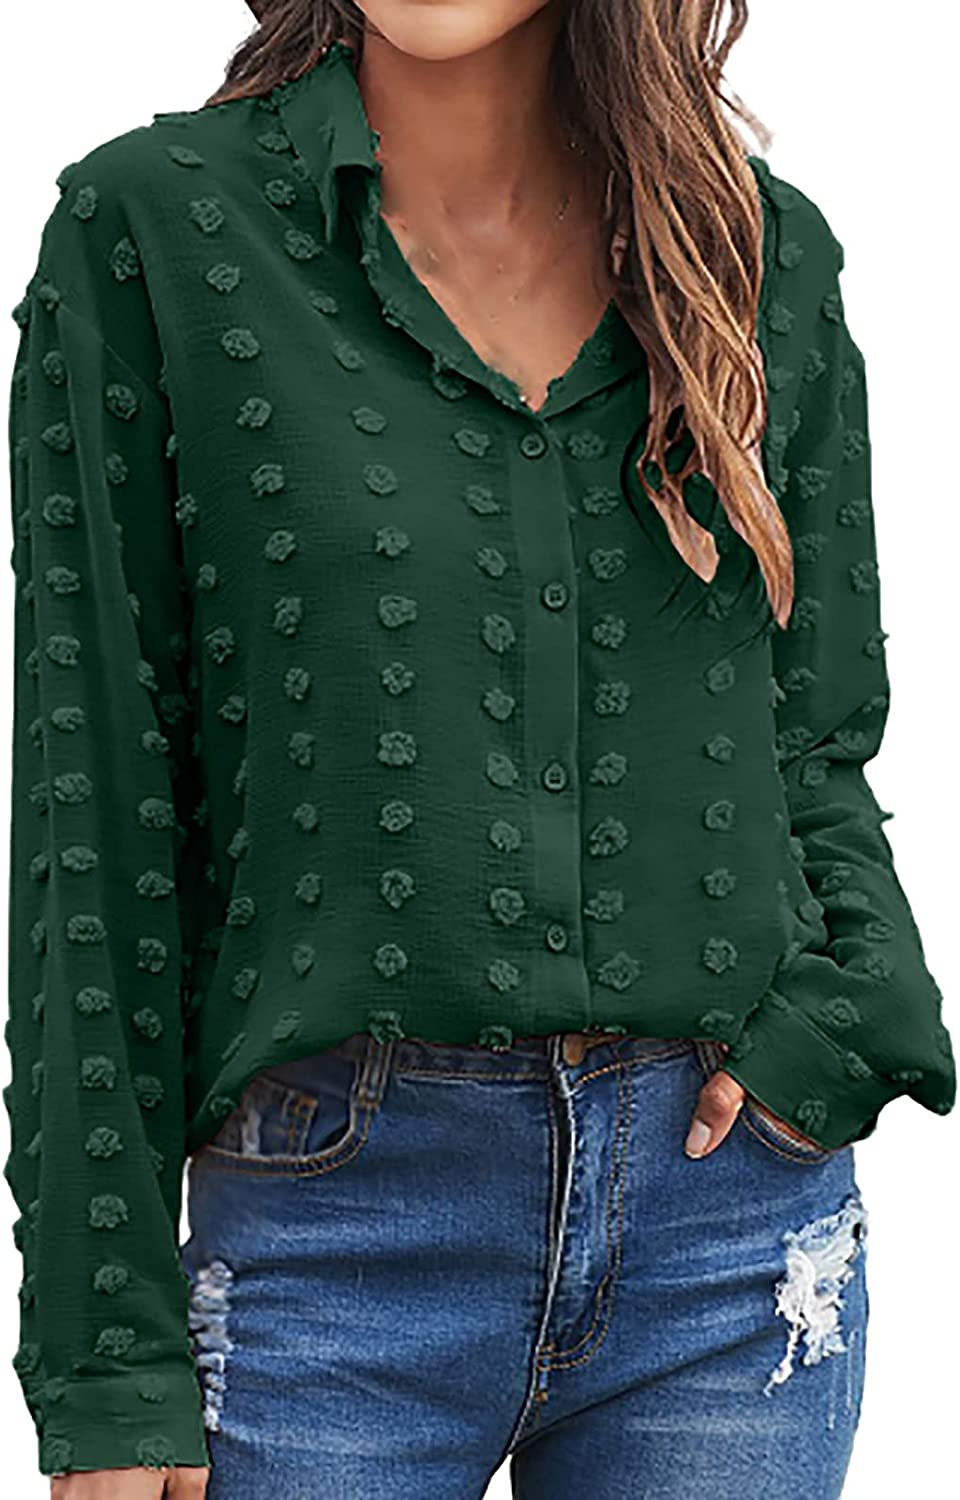 Olivcker Long Sleeve Shirts for Women Button Lapel V-Neck Tops Solid Color Autumn Female Fashion Blouses Casual Comfy Blouses